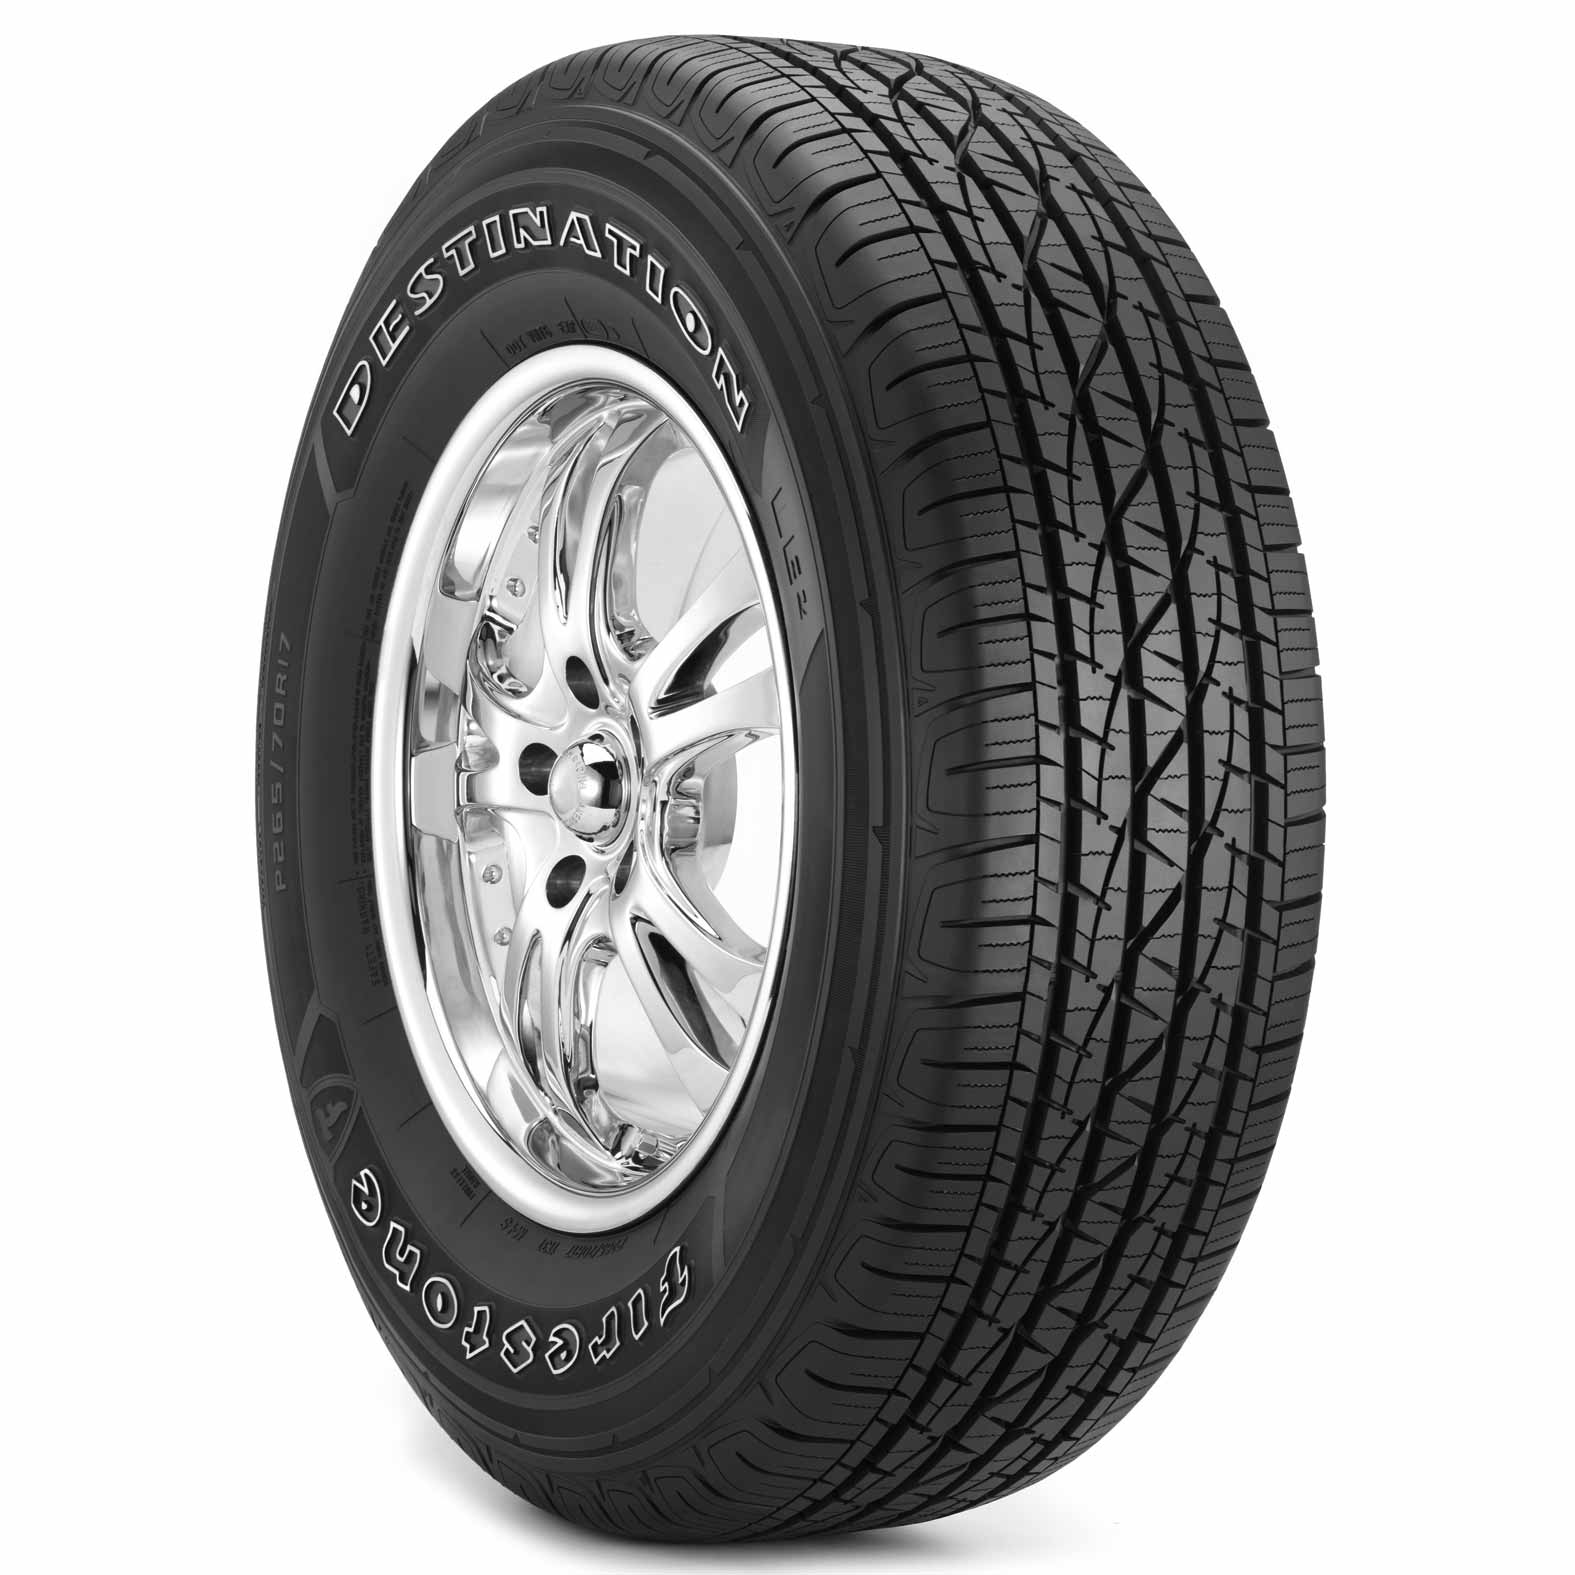 Firestone Destination LE2 tire - angle